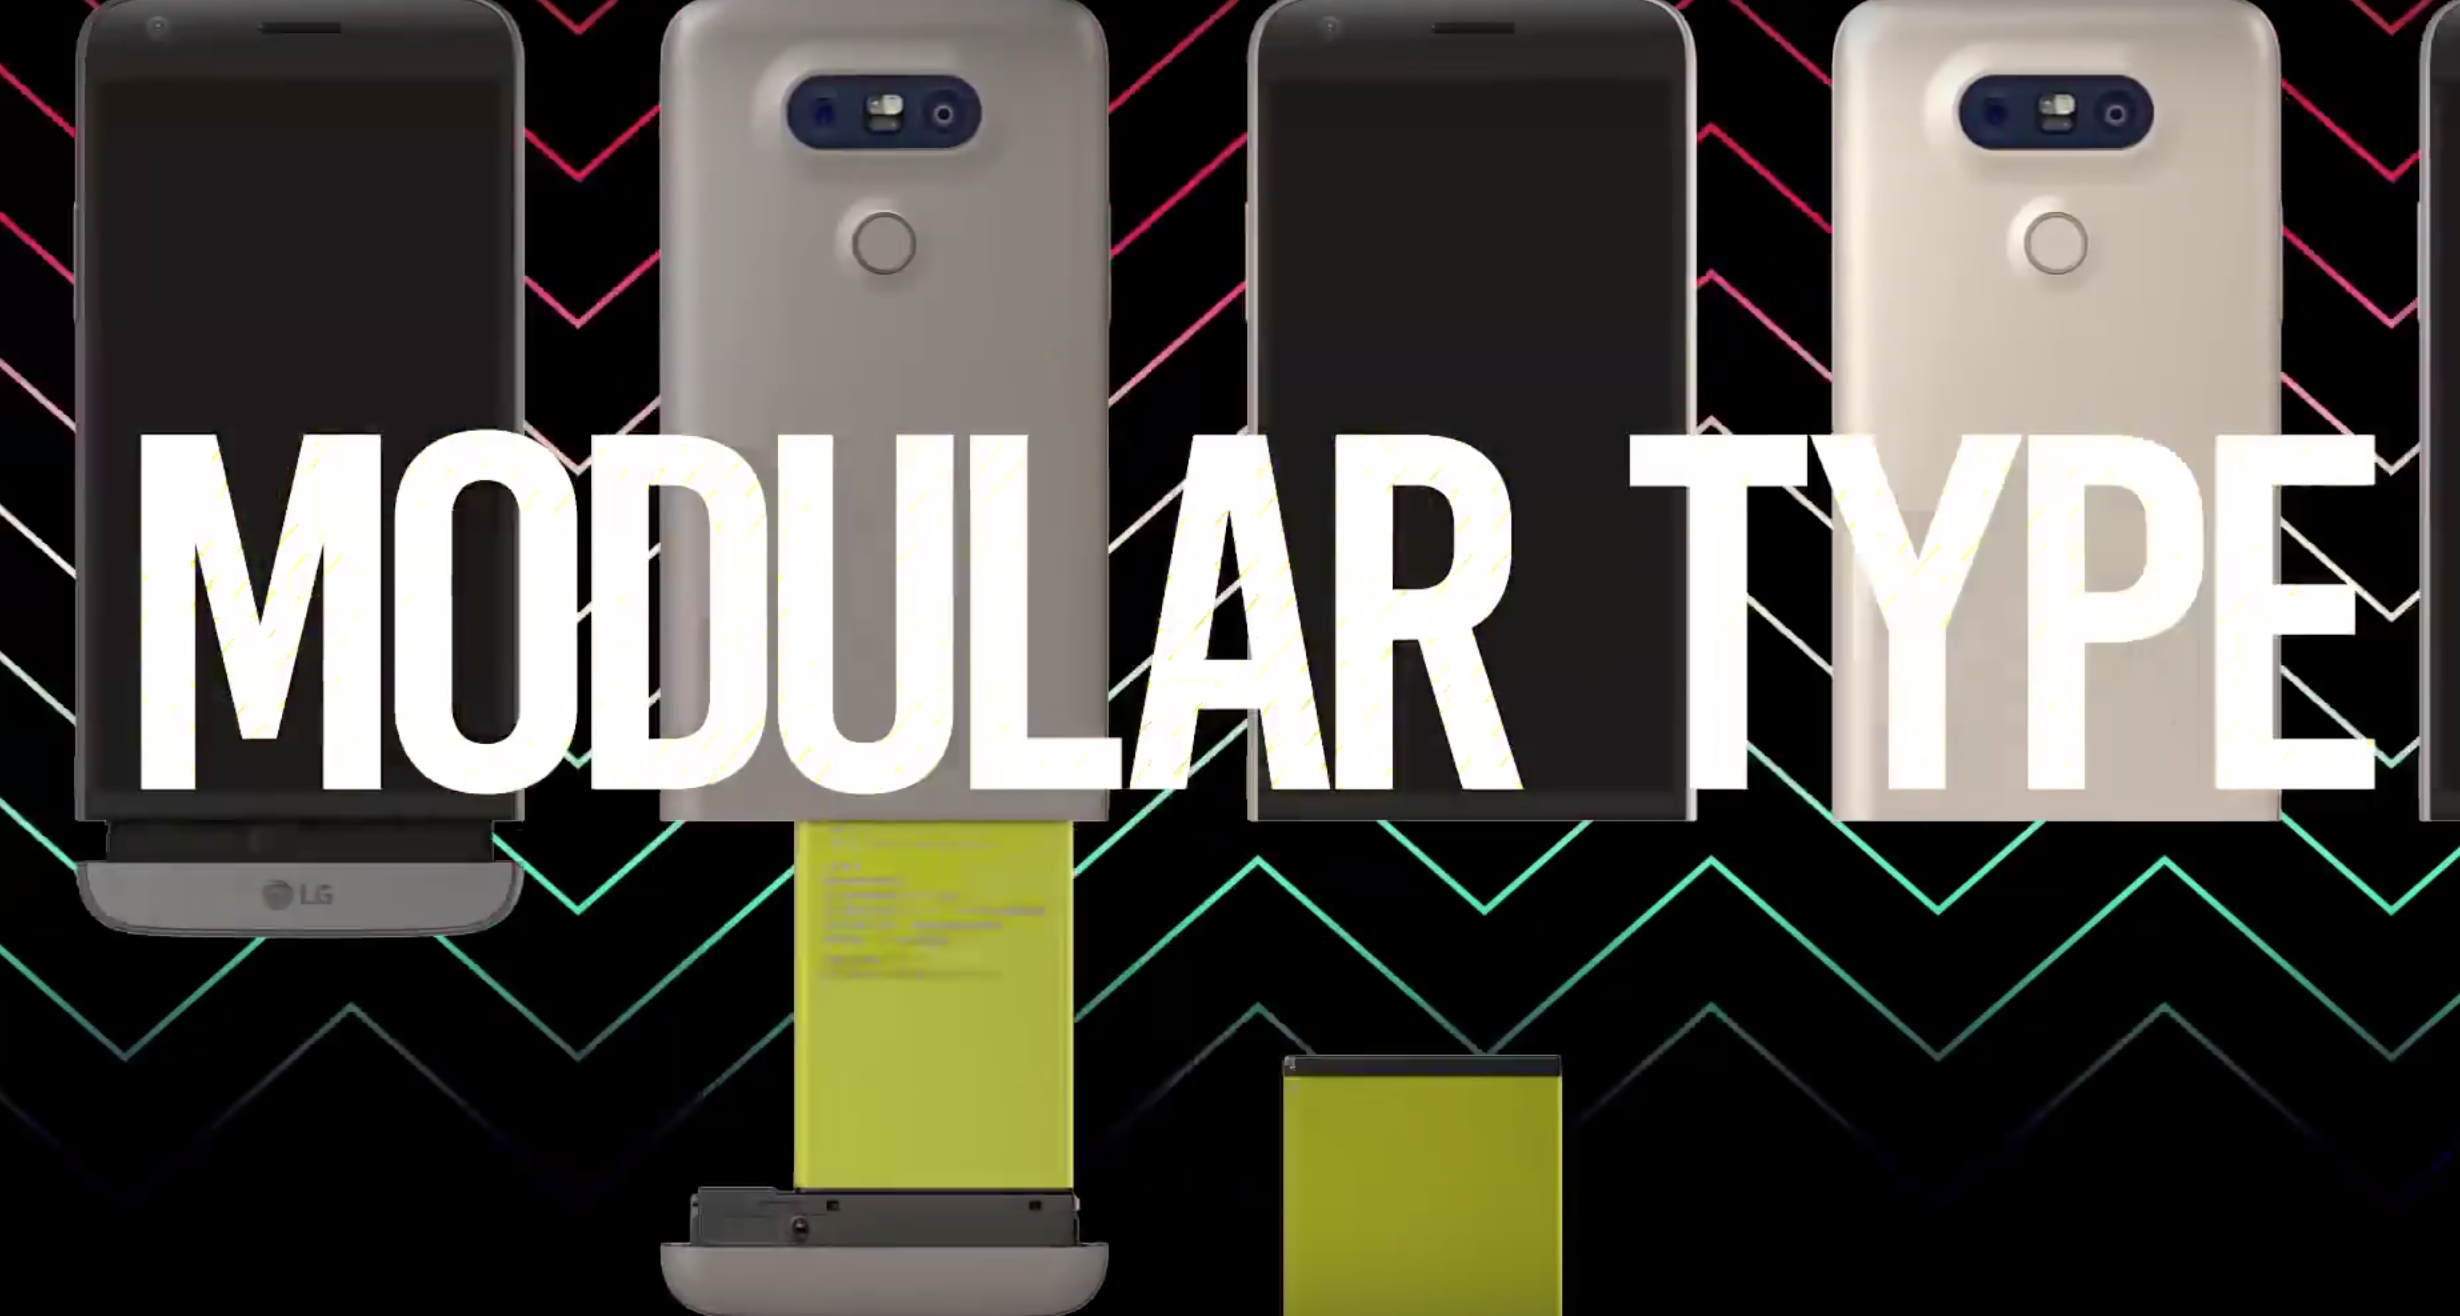 LG Admits No One Cared About Its Modular Phone Last Year